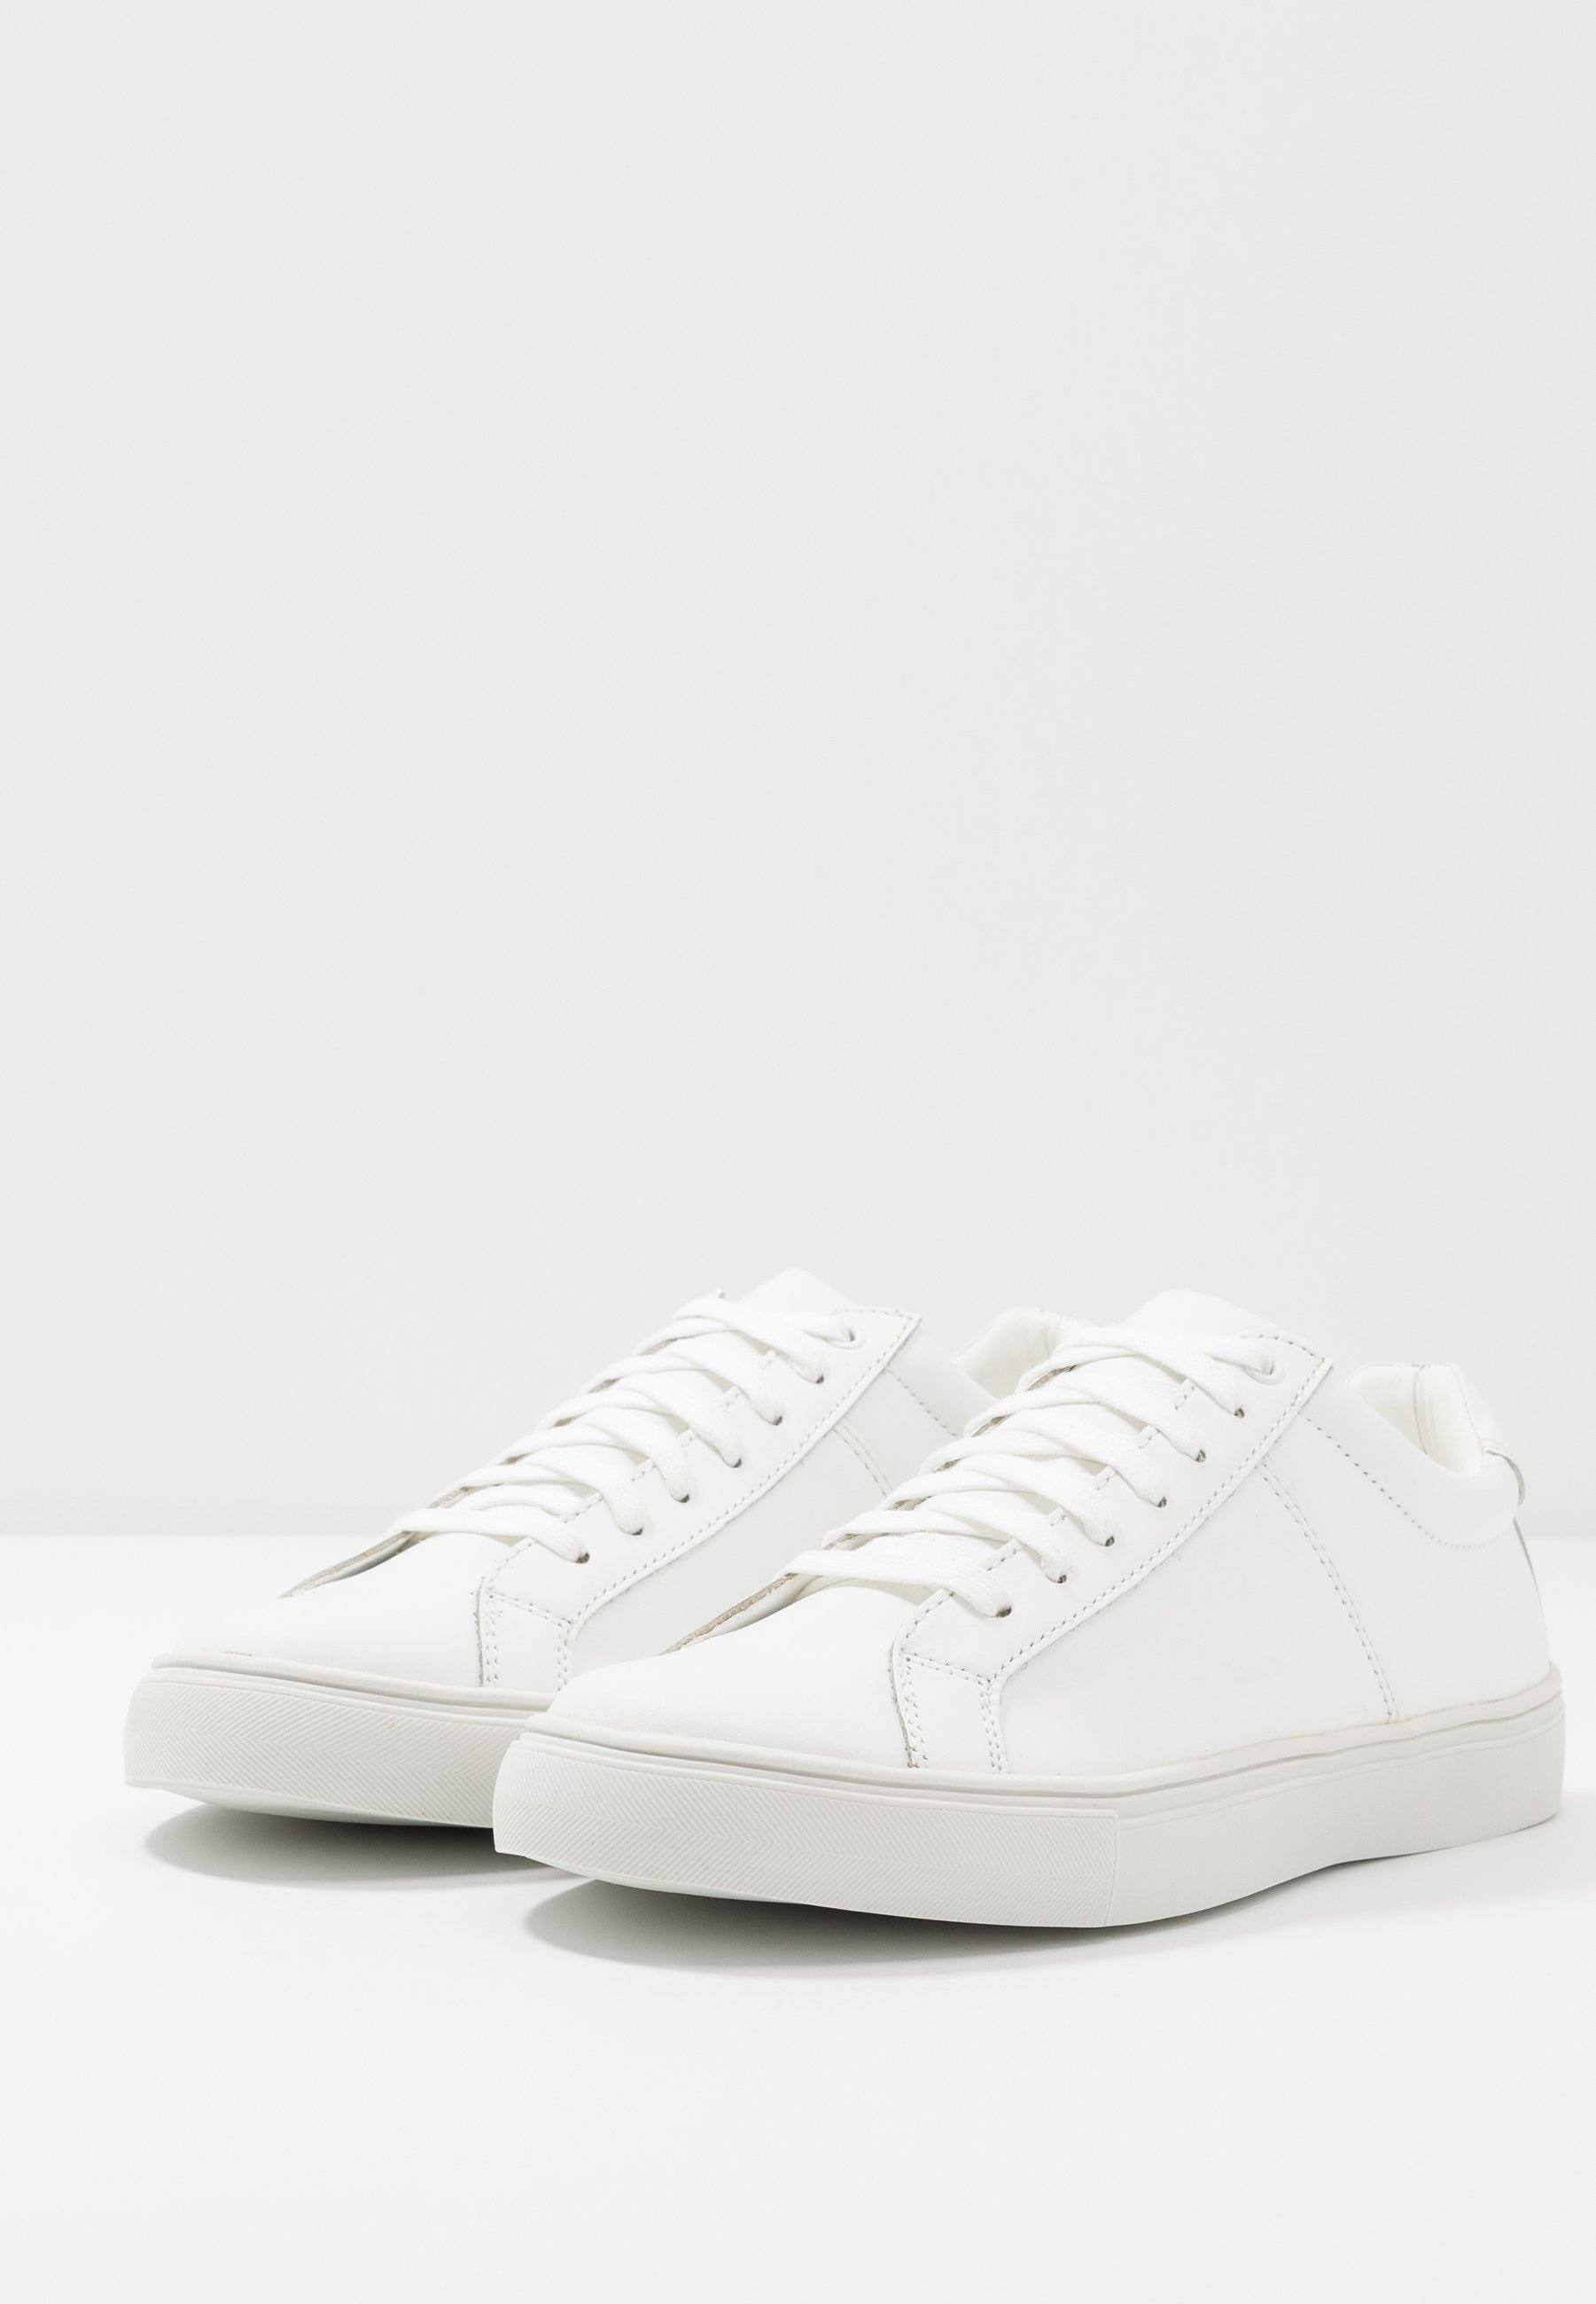 Zign Trainers - white Women's Skate Shoes maip6